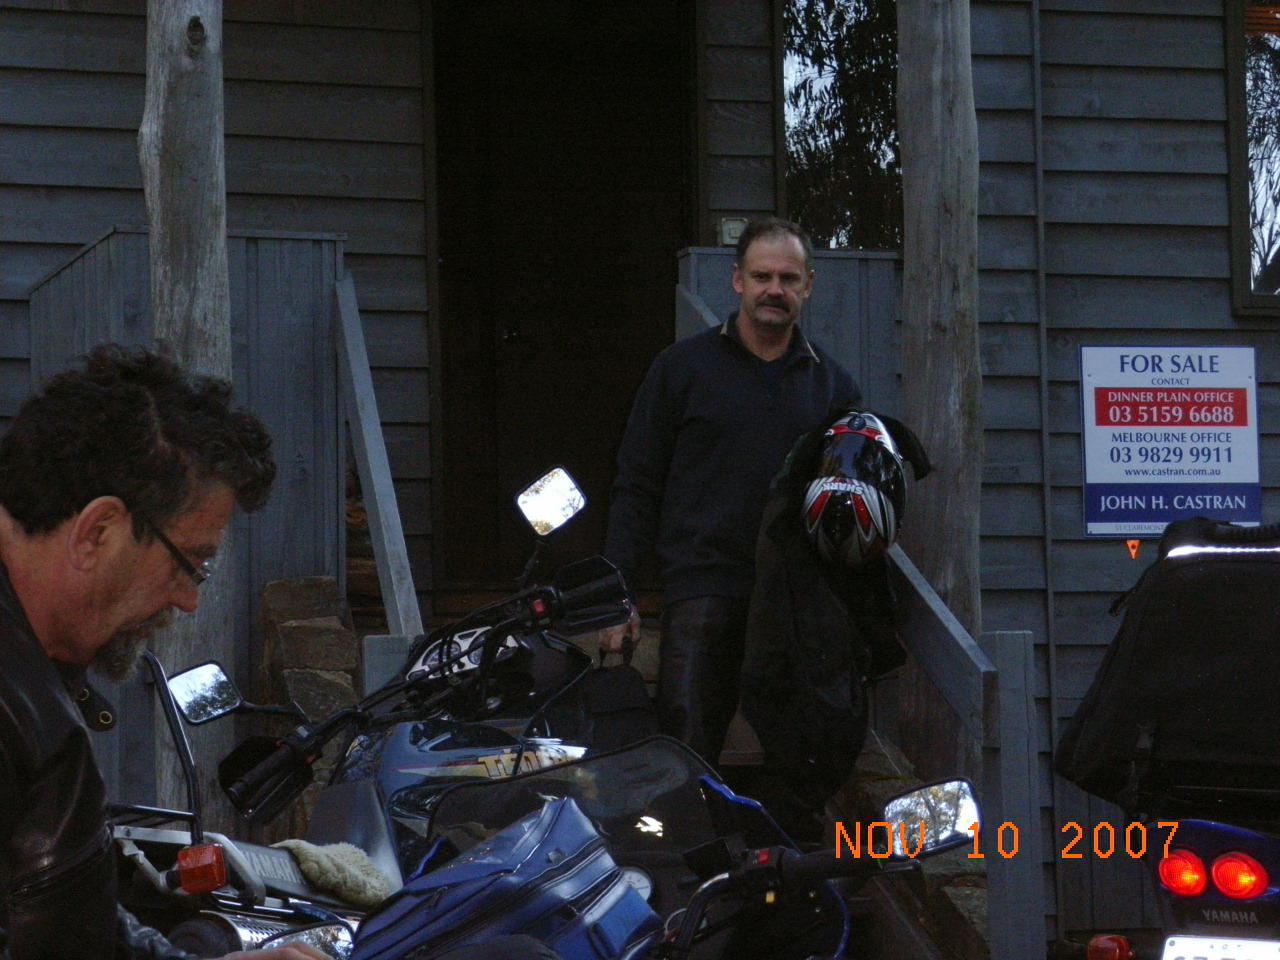 Bleary eyed the next morning Guzzi and Tim load up their bikes.